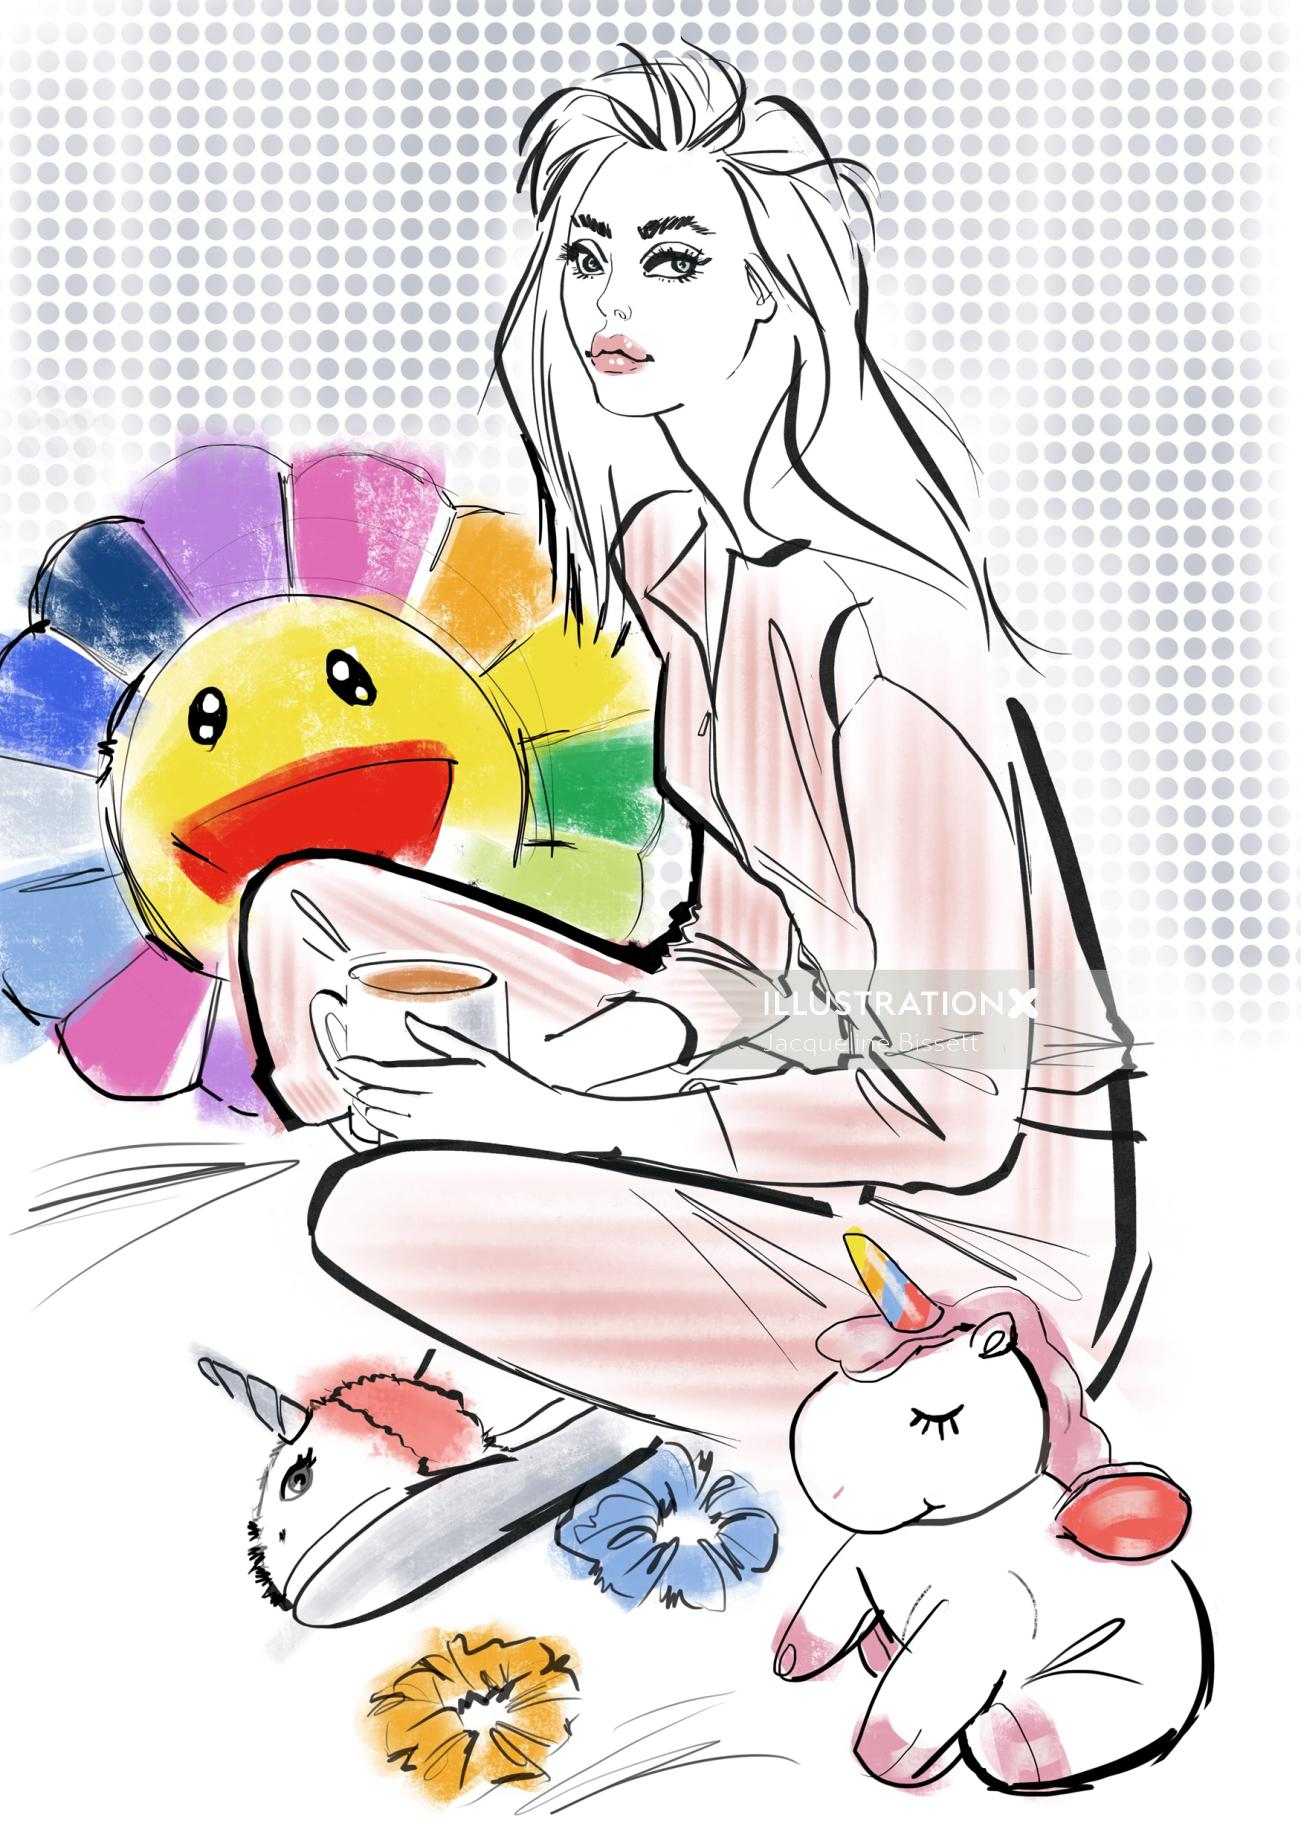 A girl sitting with toys illustrated with ink and brushstroke